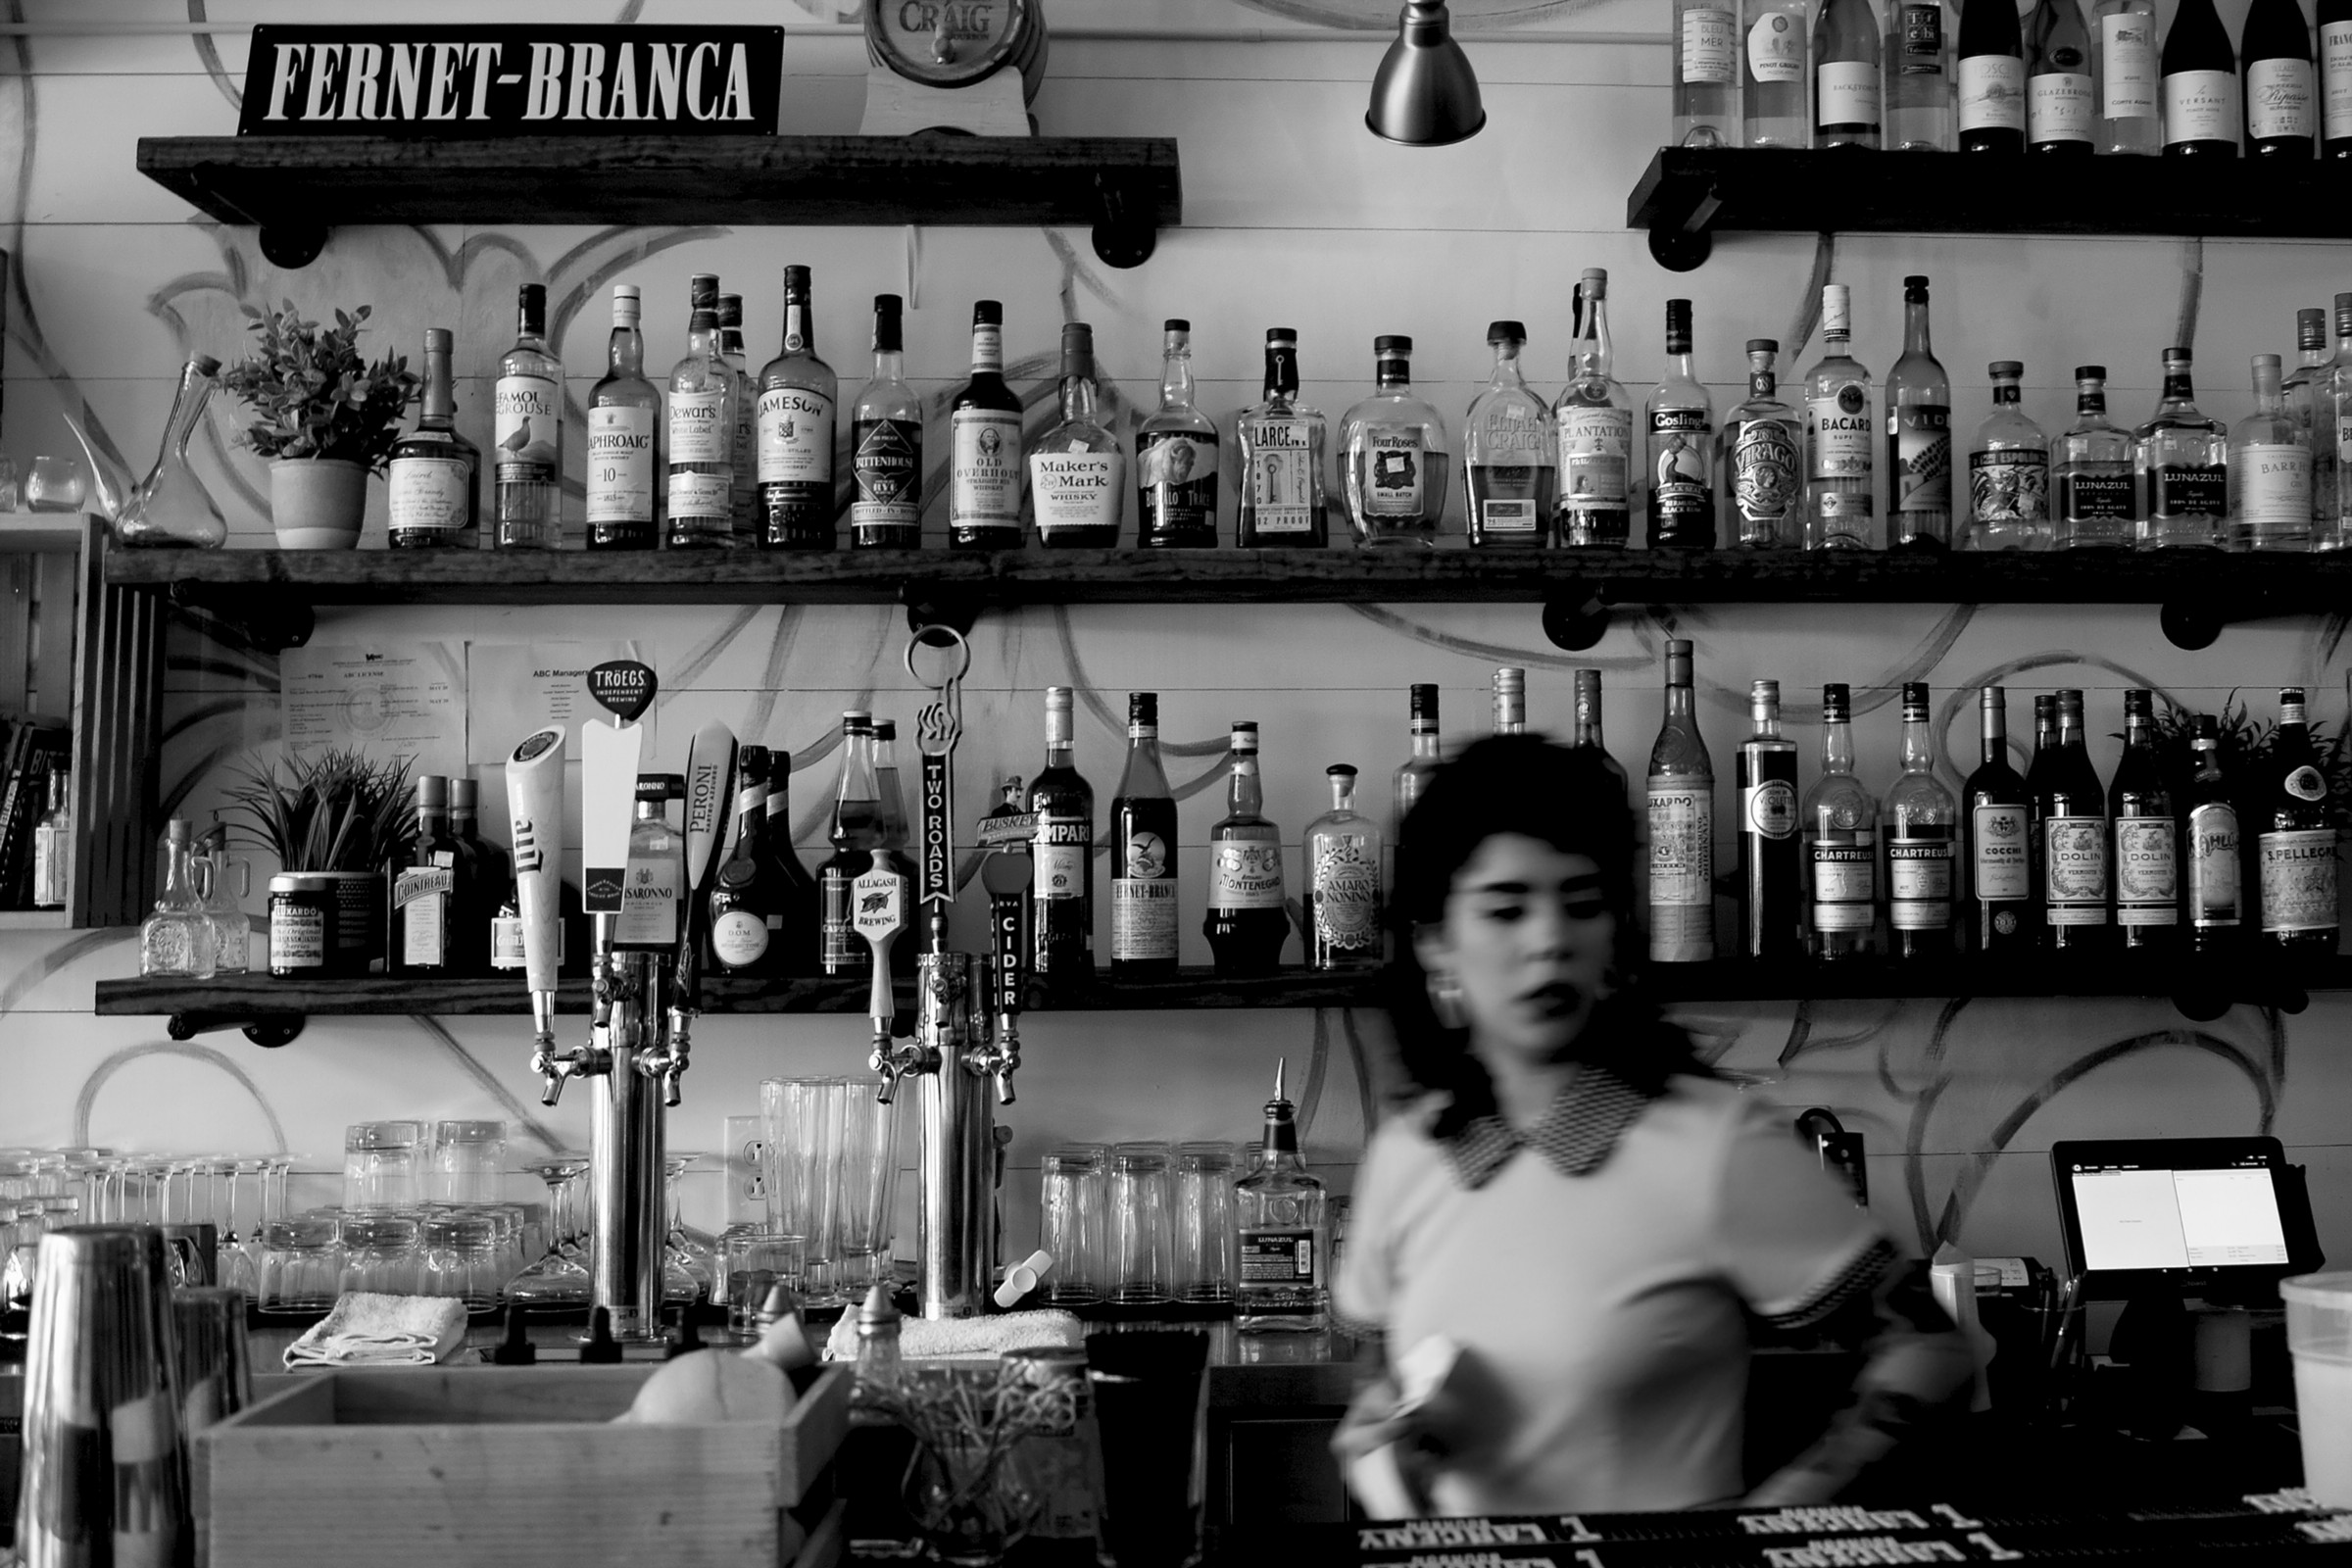 Cafe bar tender in black and white